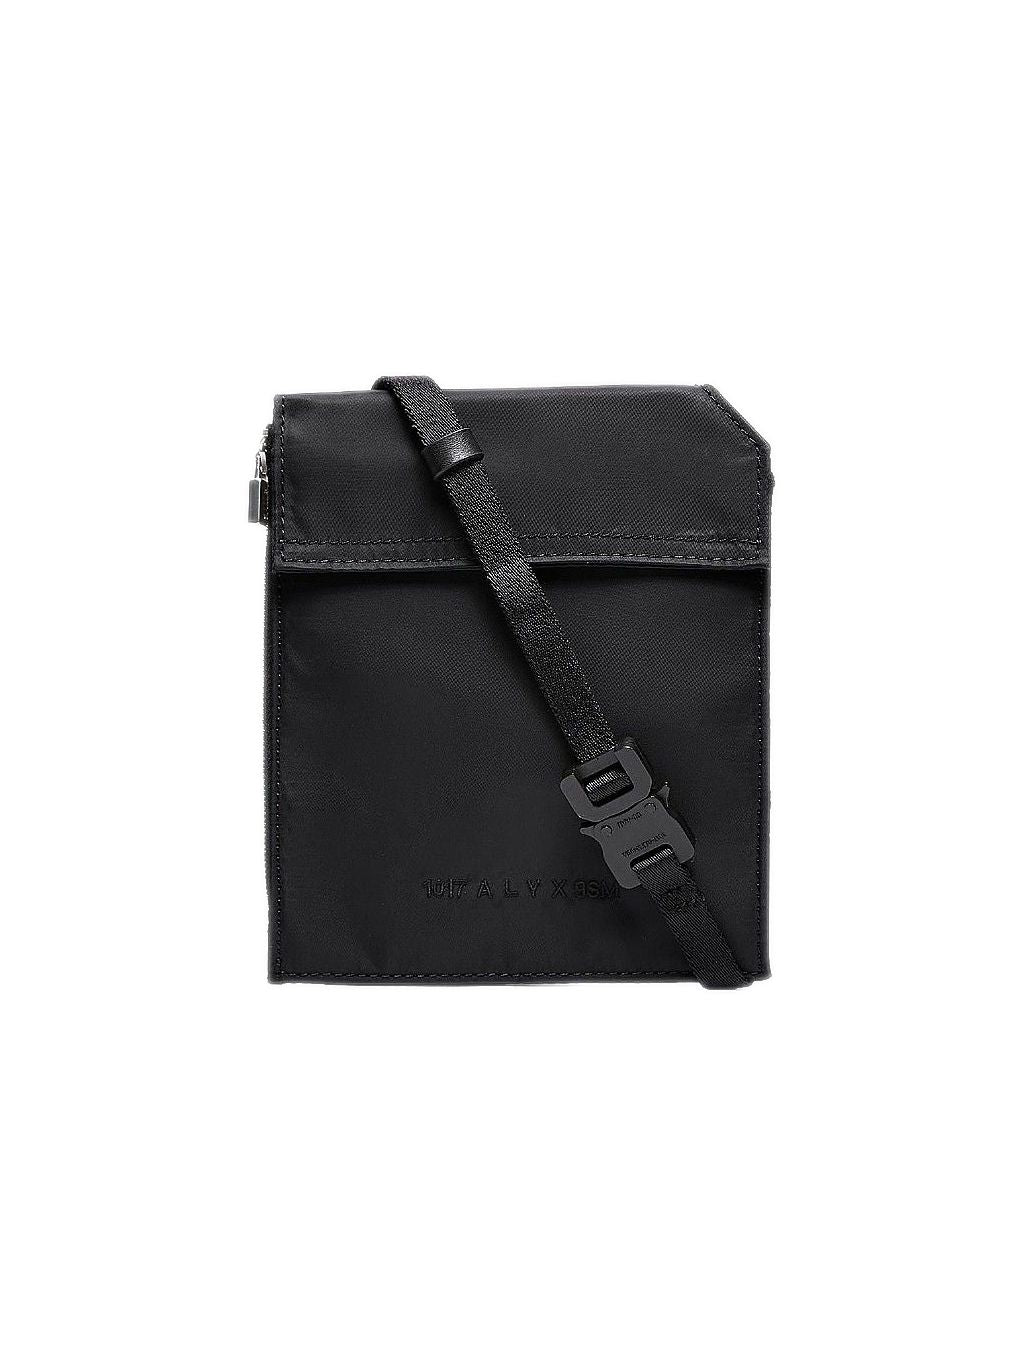 Black or Green Fuoripista Pouch